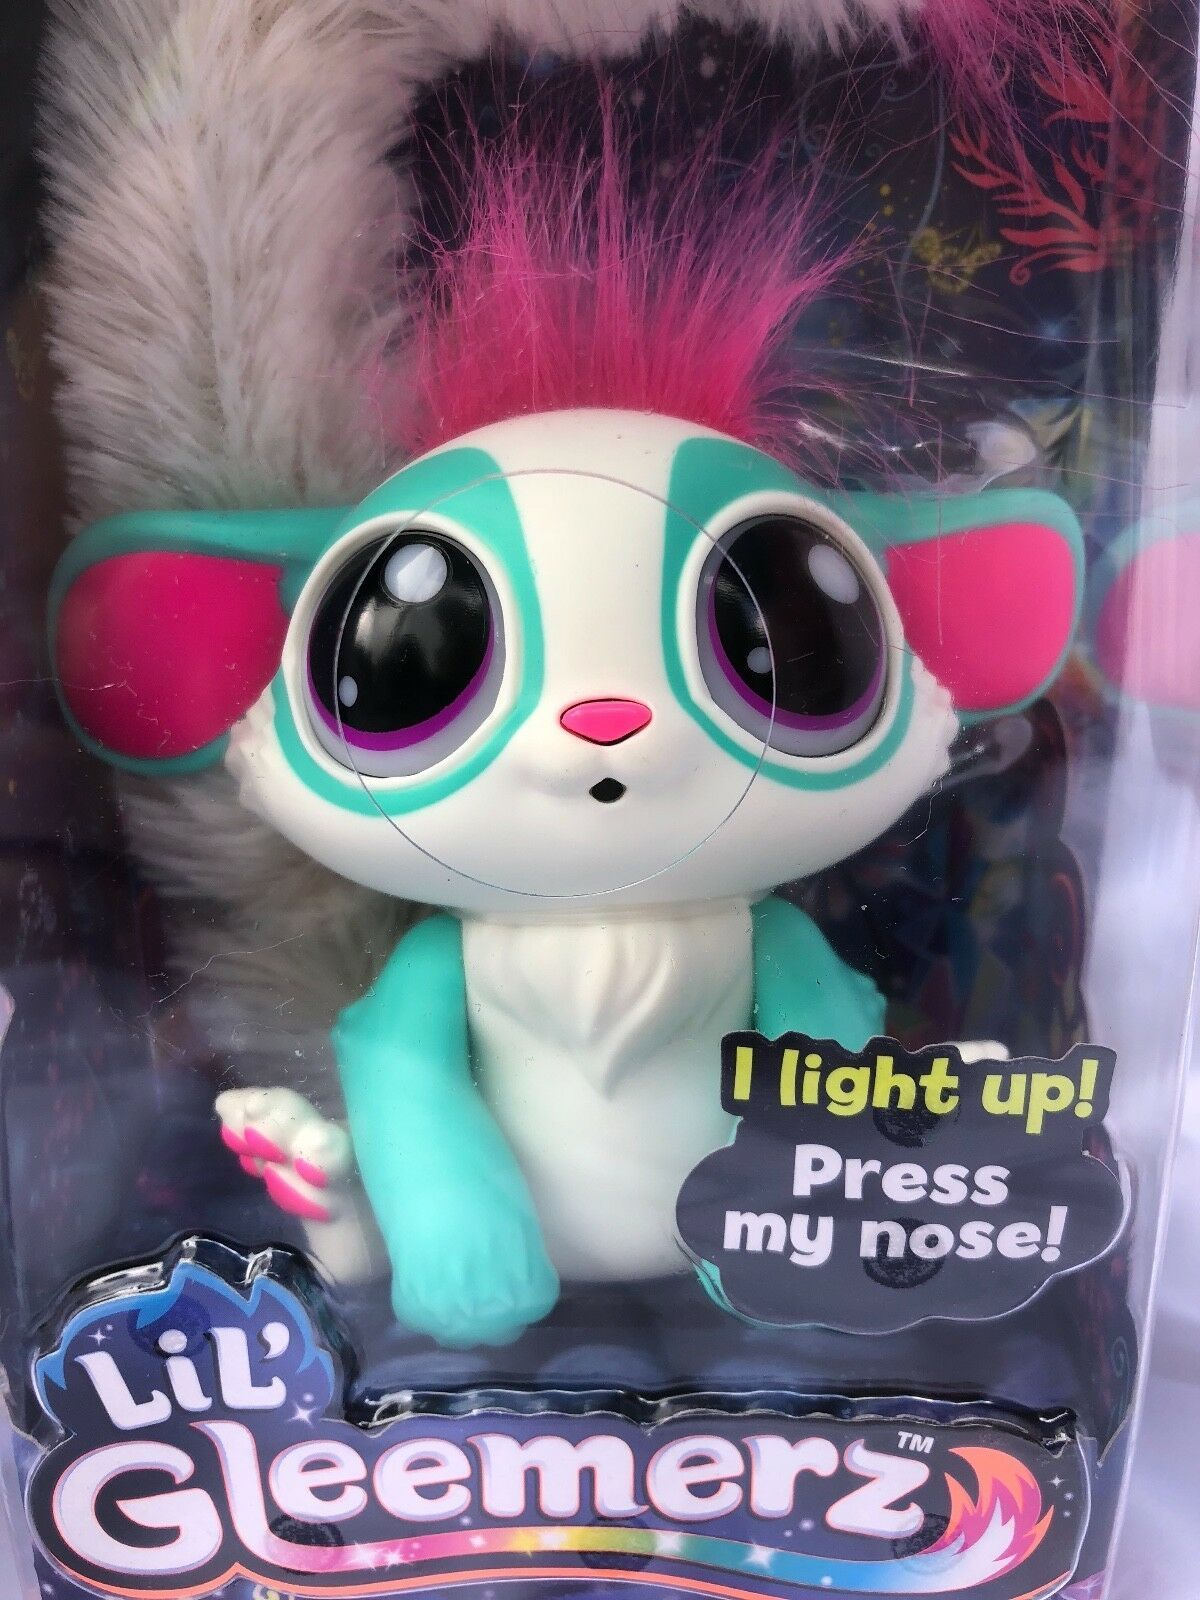 NEW Mattel Lil' Gleemerz Doll Amiglow Green Interactive New In Package-In Hand